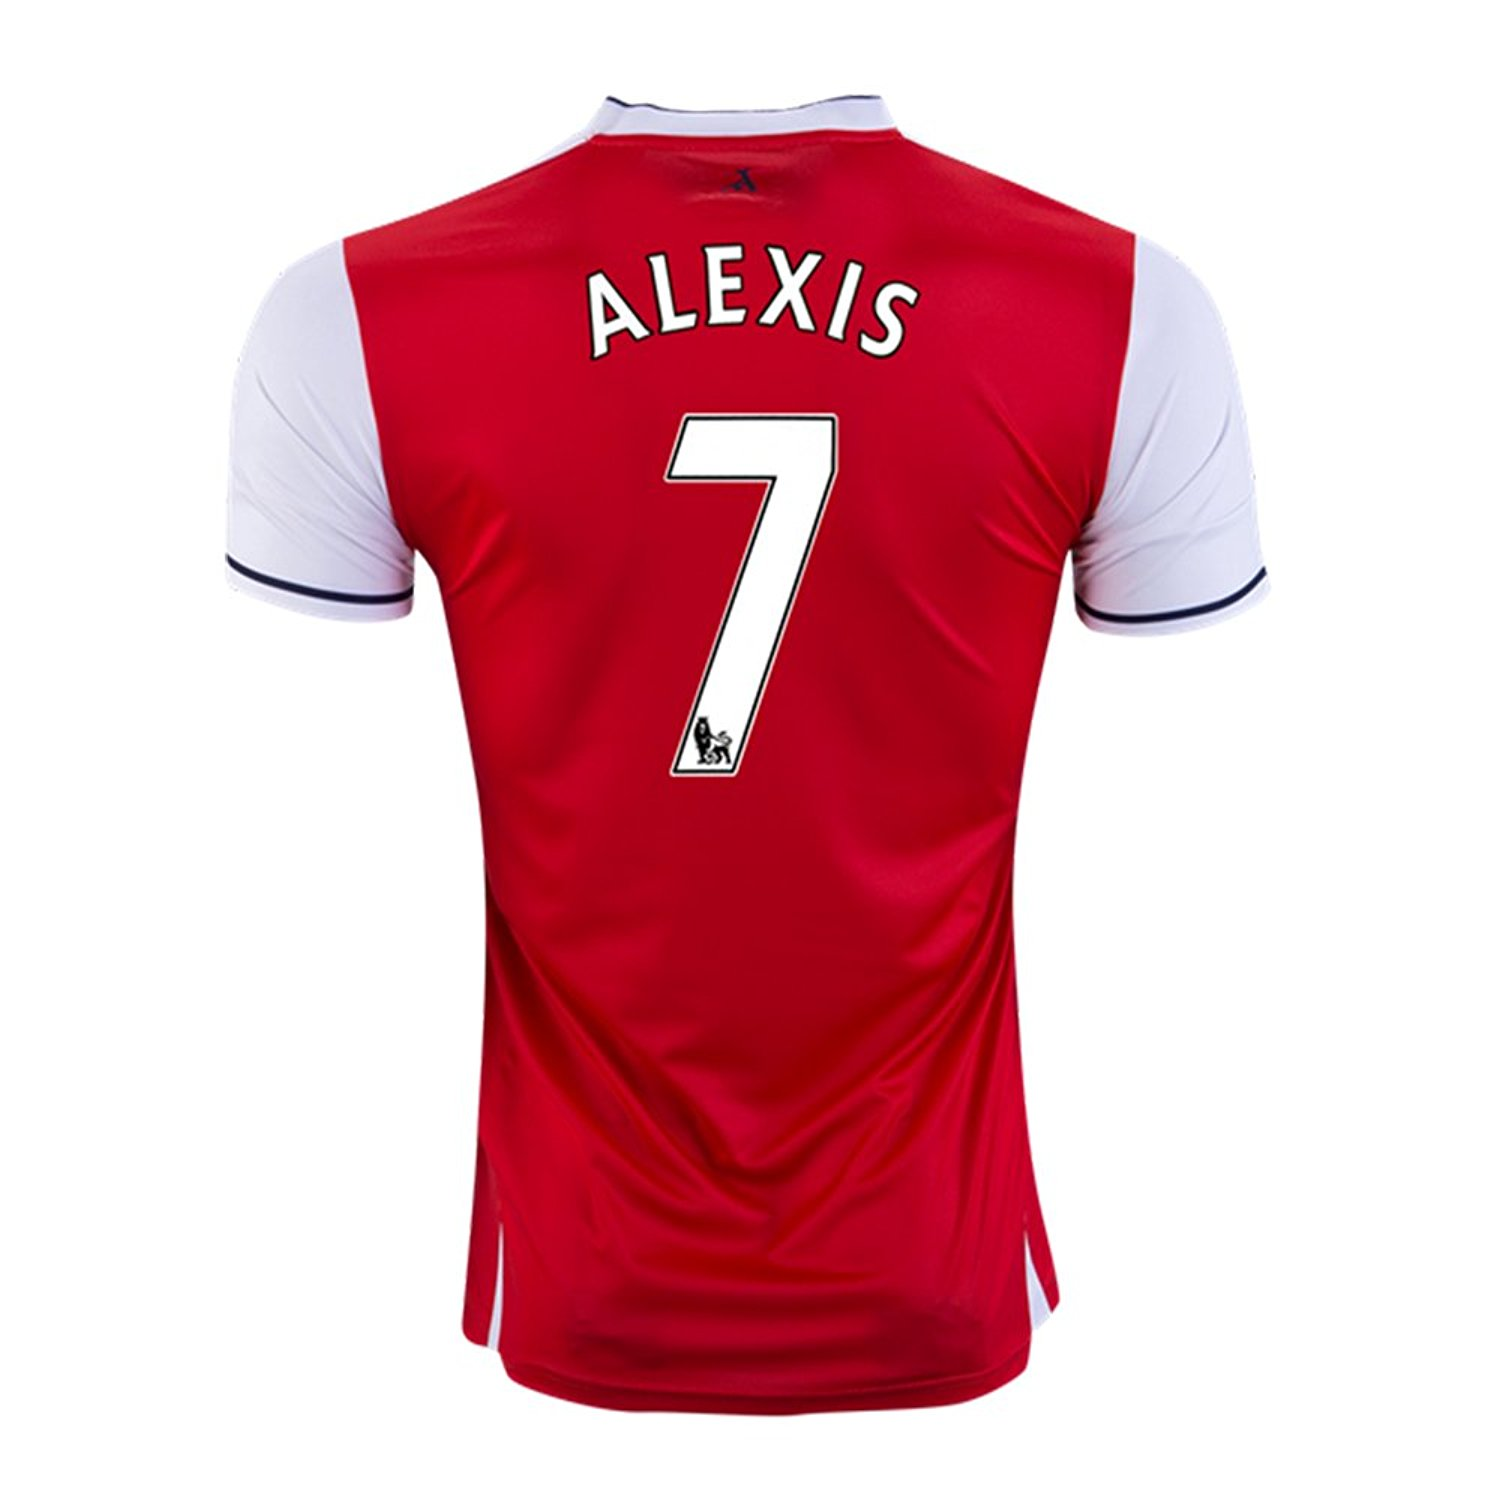 Puma Mens Alexis #7 Official Arsenal 2016/17 Home Soccer Jersey W Patches